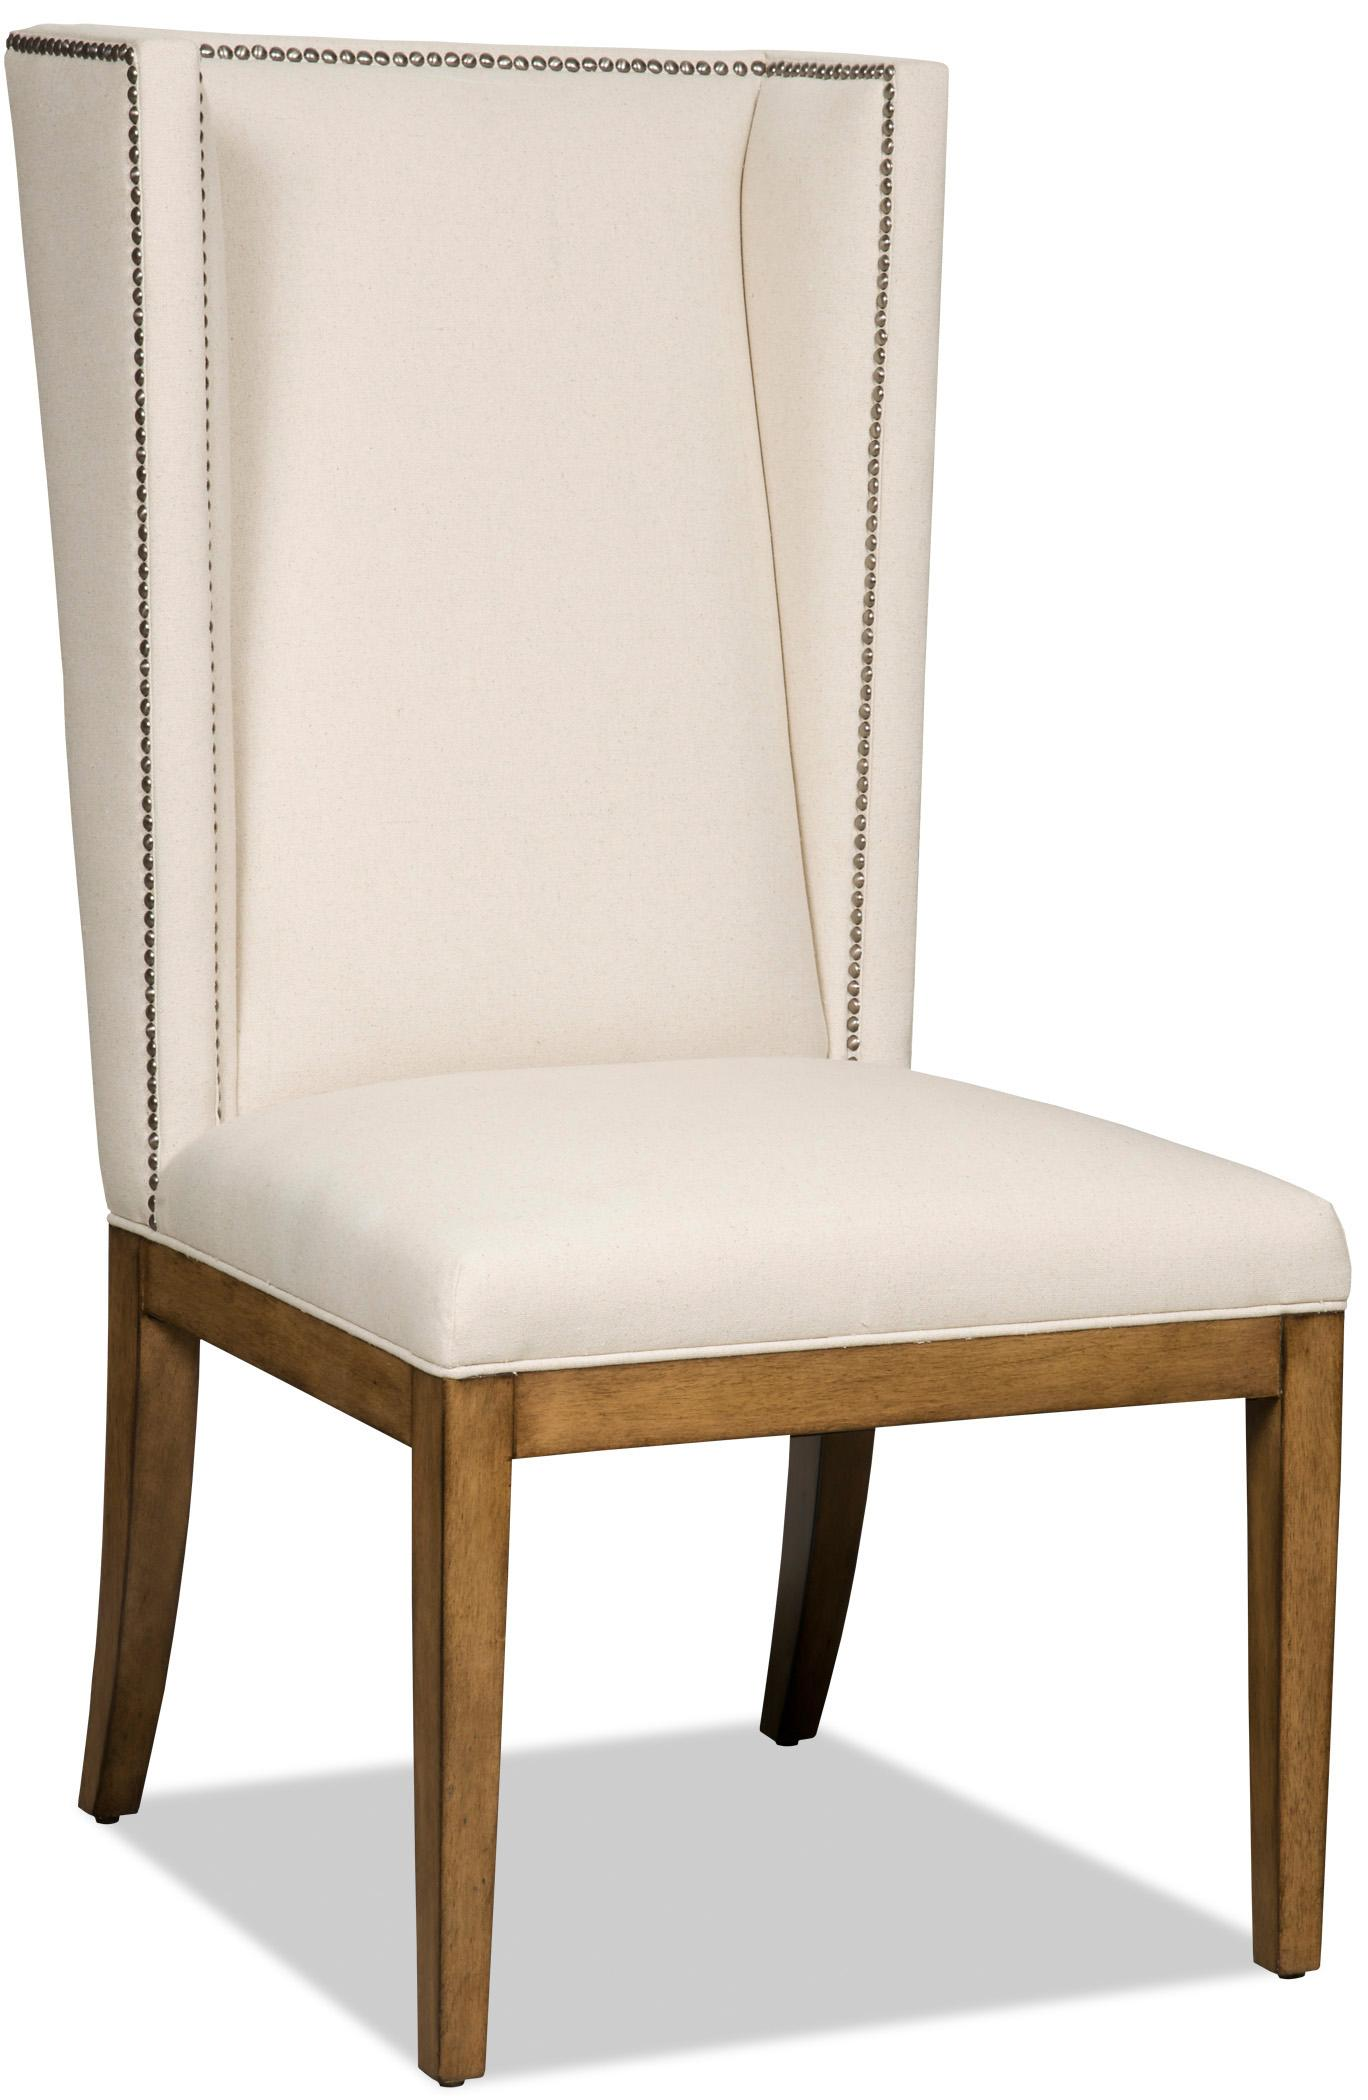 Hooker Furniture Dining Chairs Dining Chair - Item Number: 300-350034